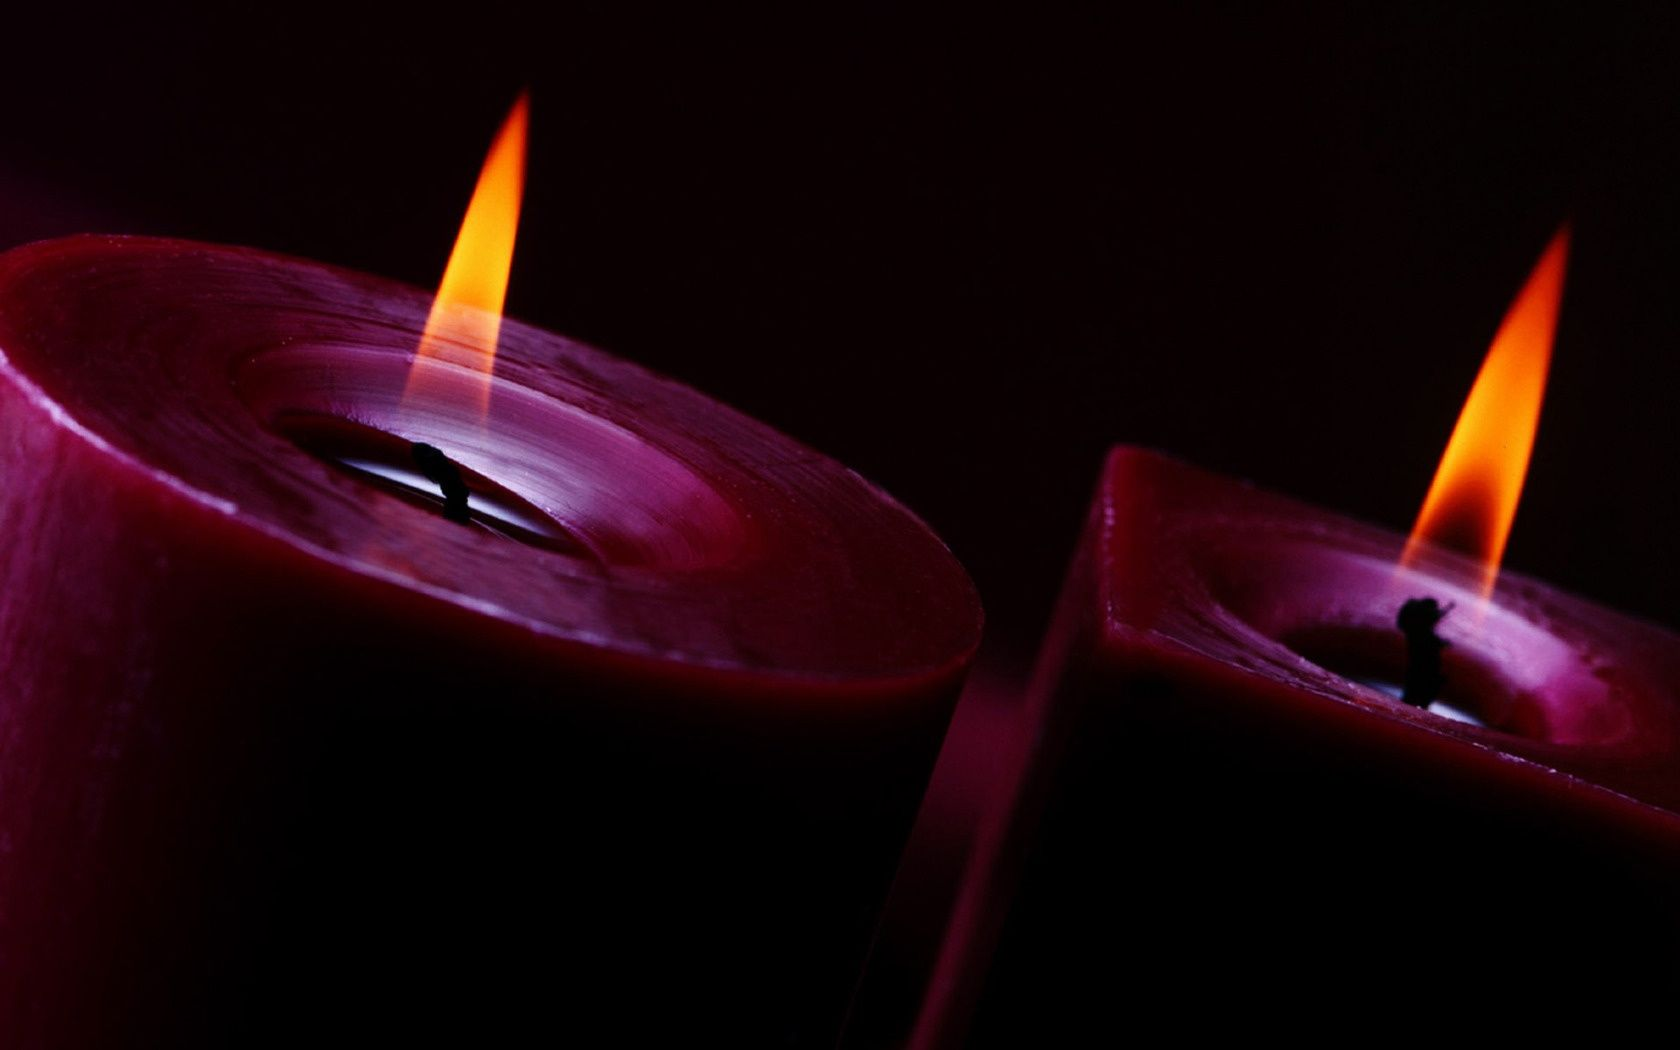 candle images free